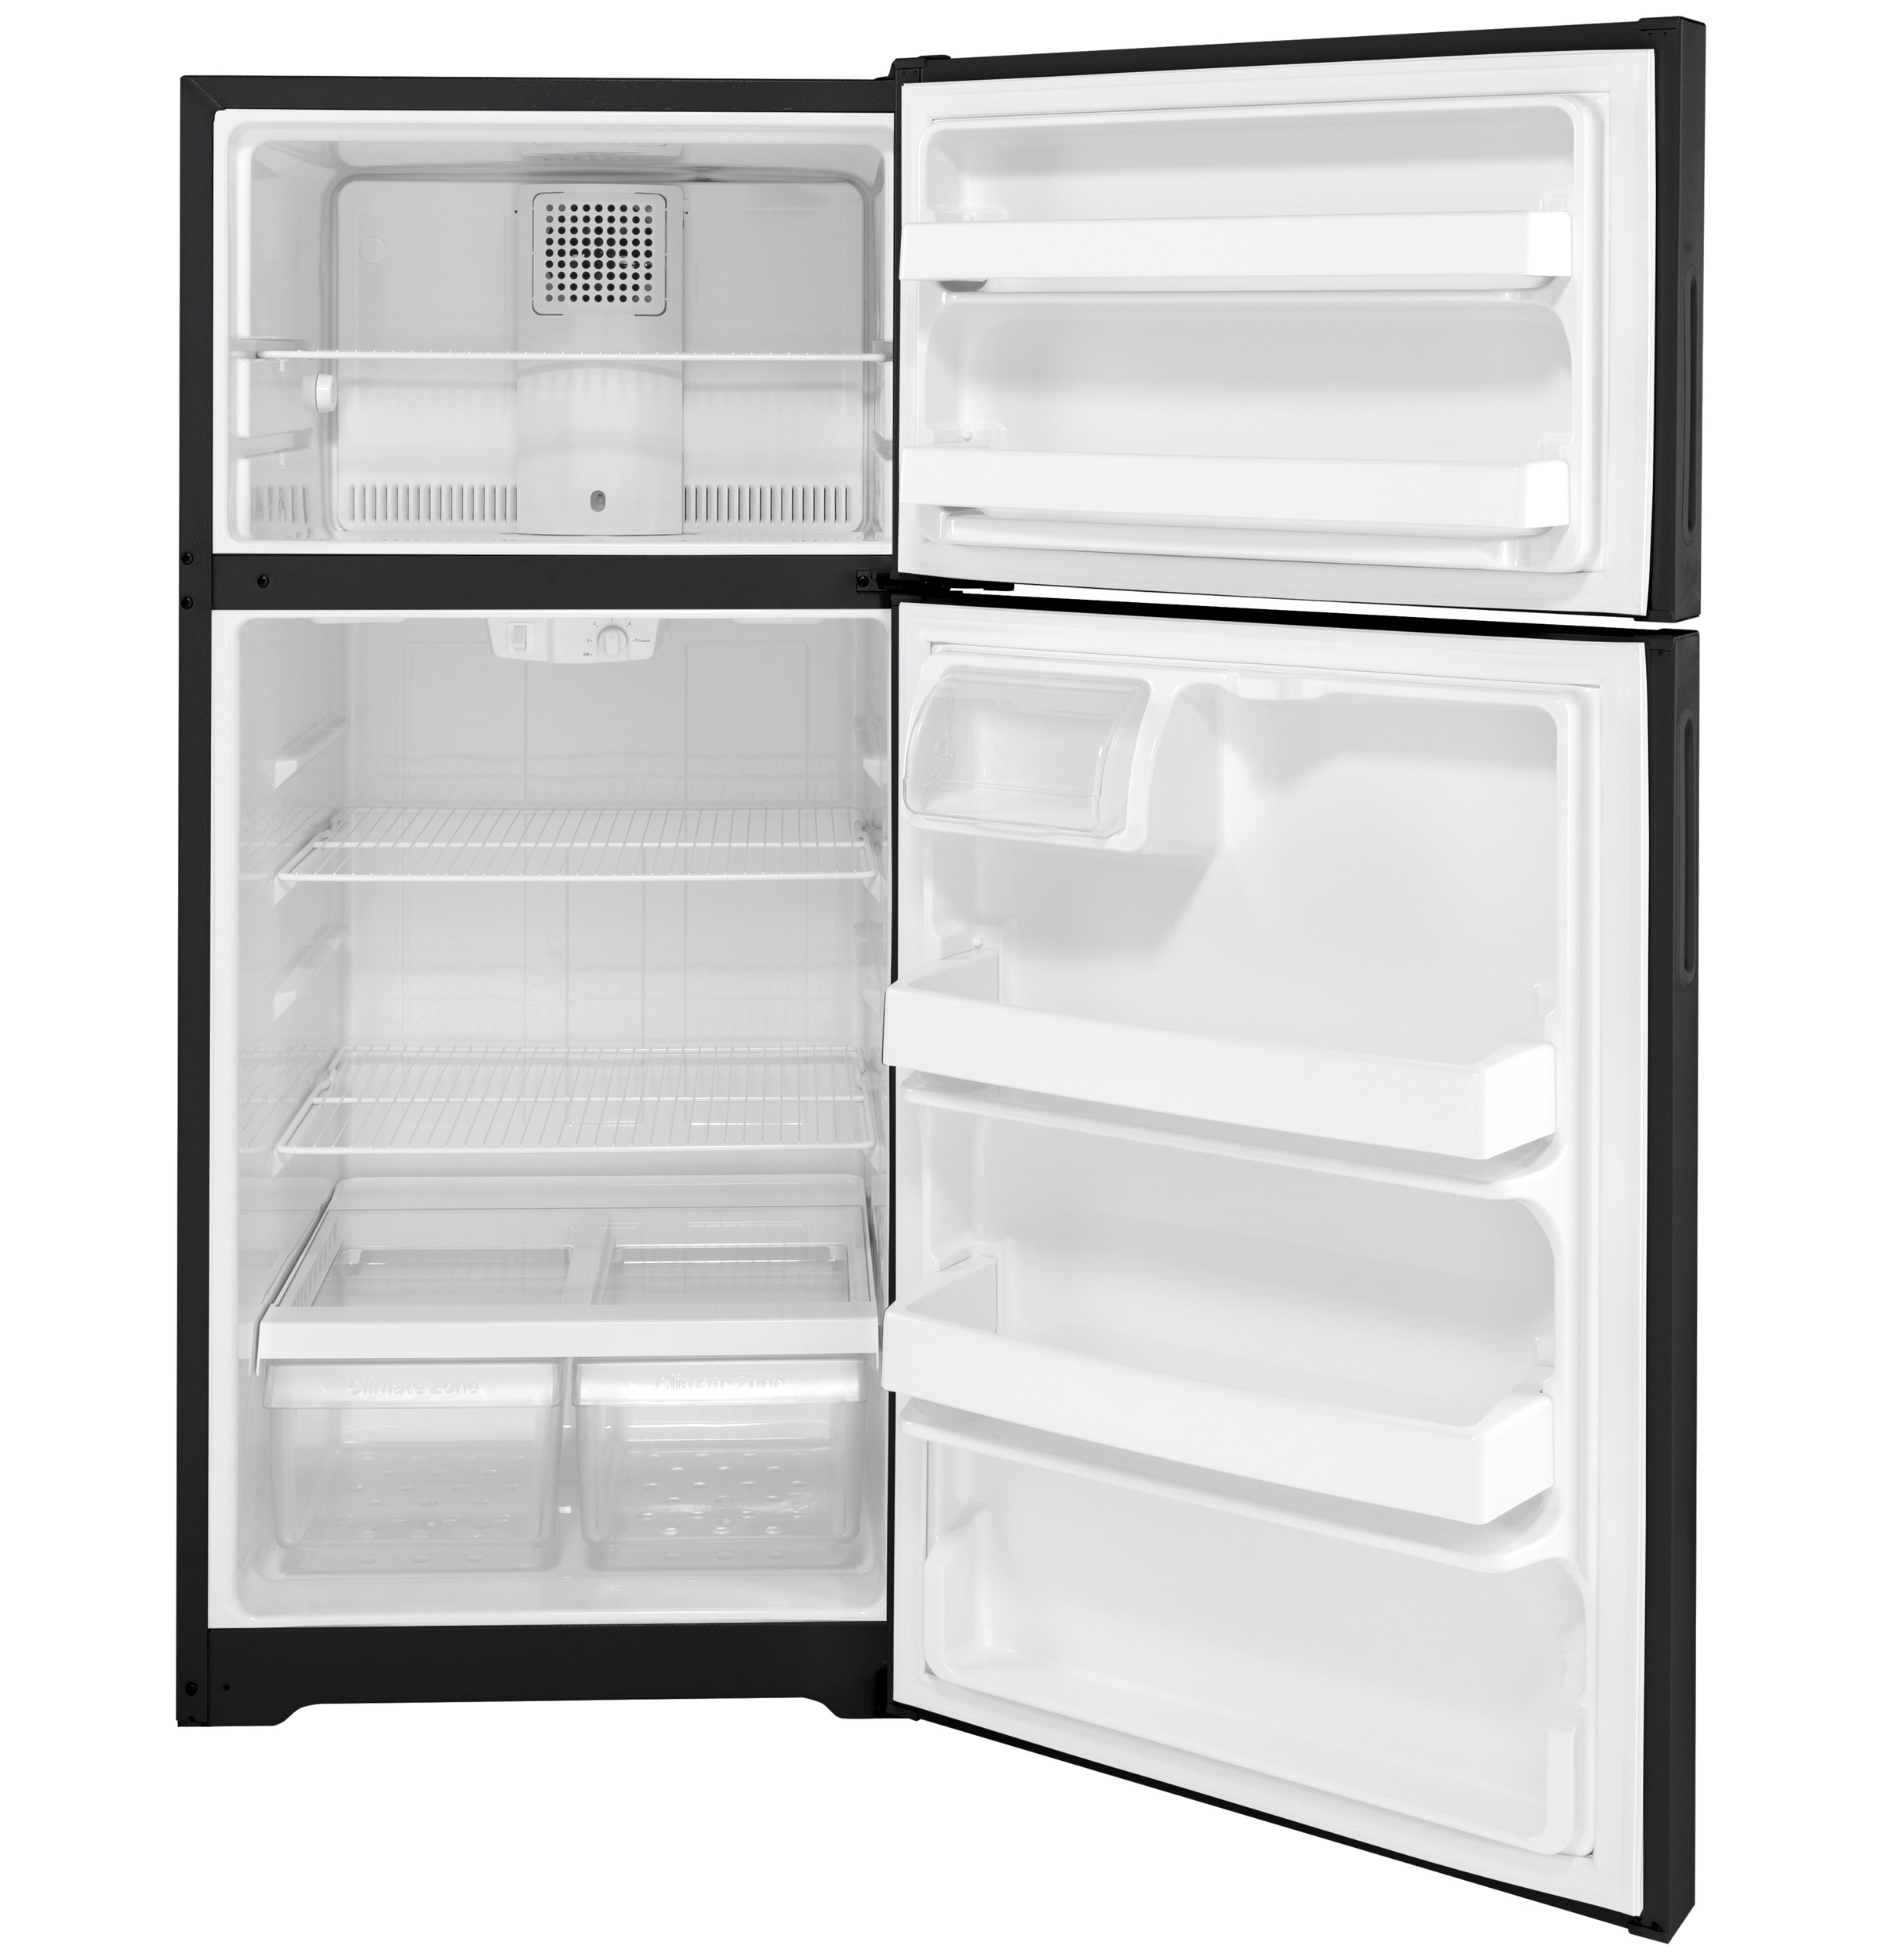 Model: HPS16BTNRBB | Hotpoint Hotpoint® 15.6 Cu. Ft. Recessed Handle Top-Freezer Refrigerator